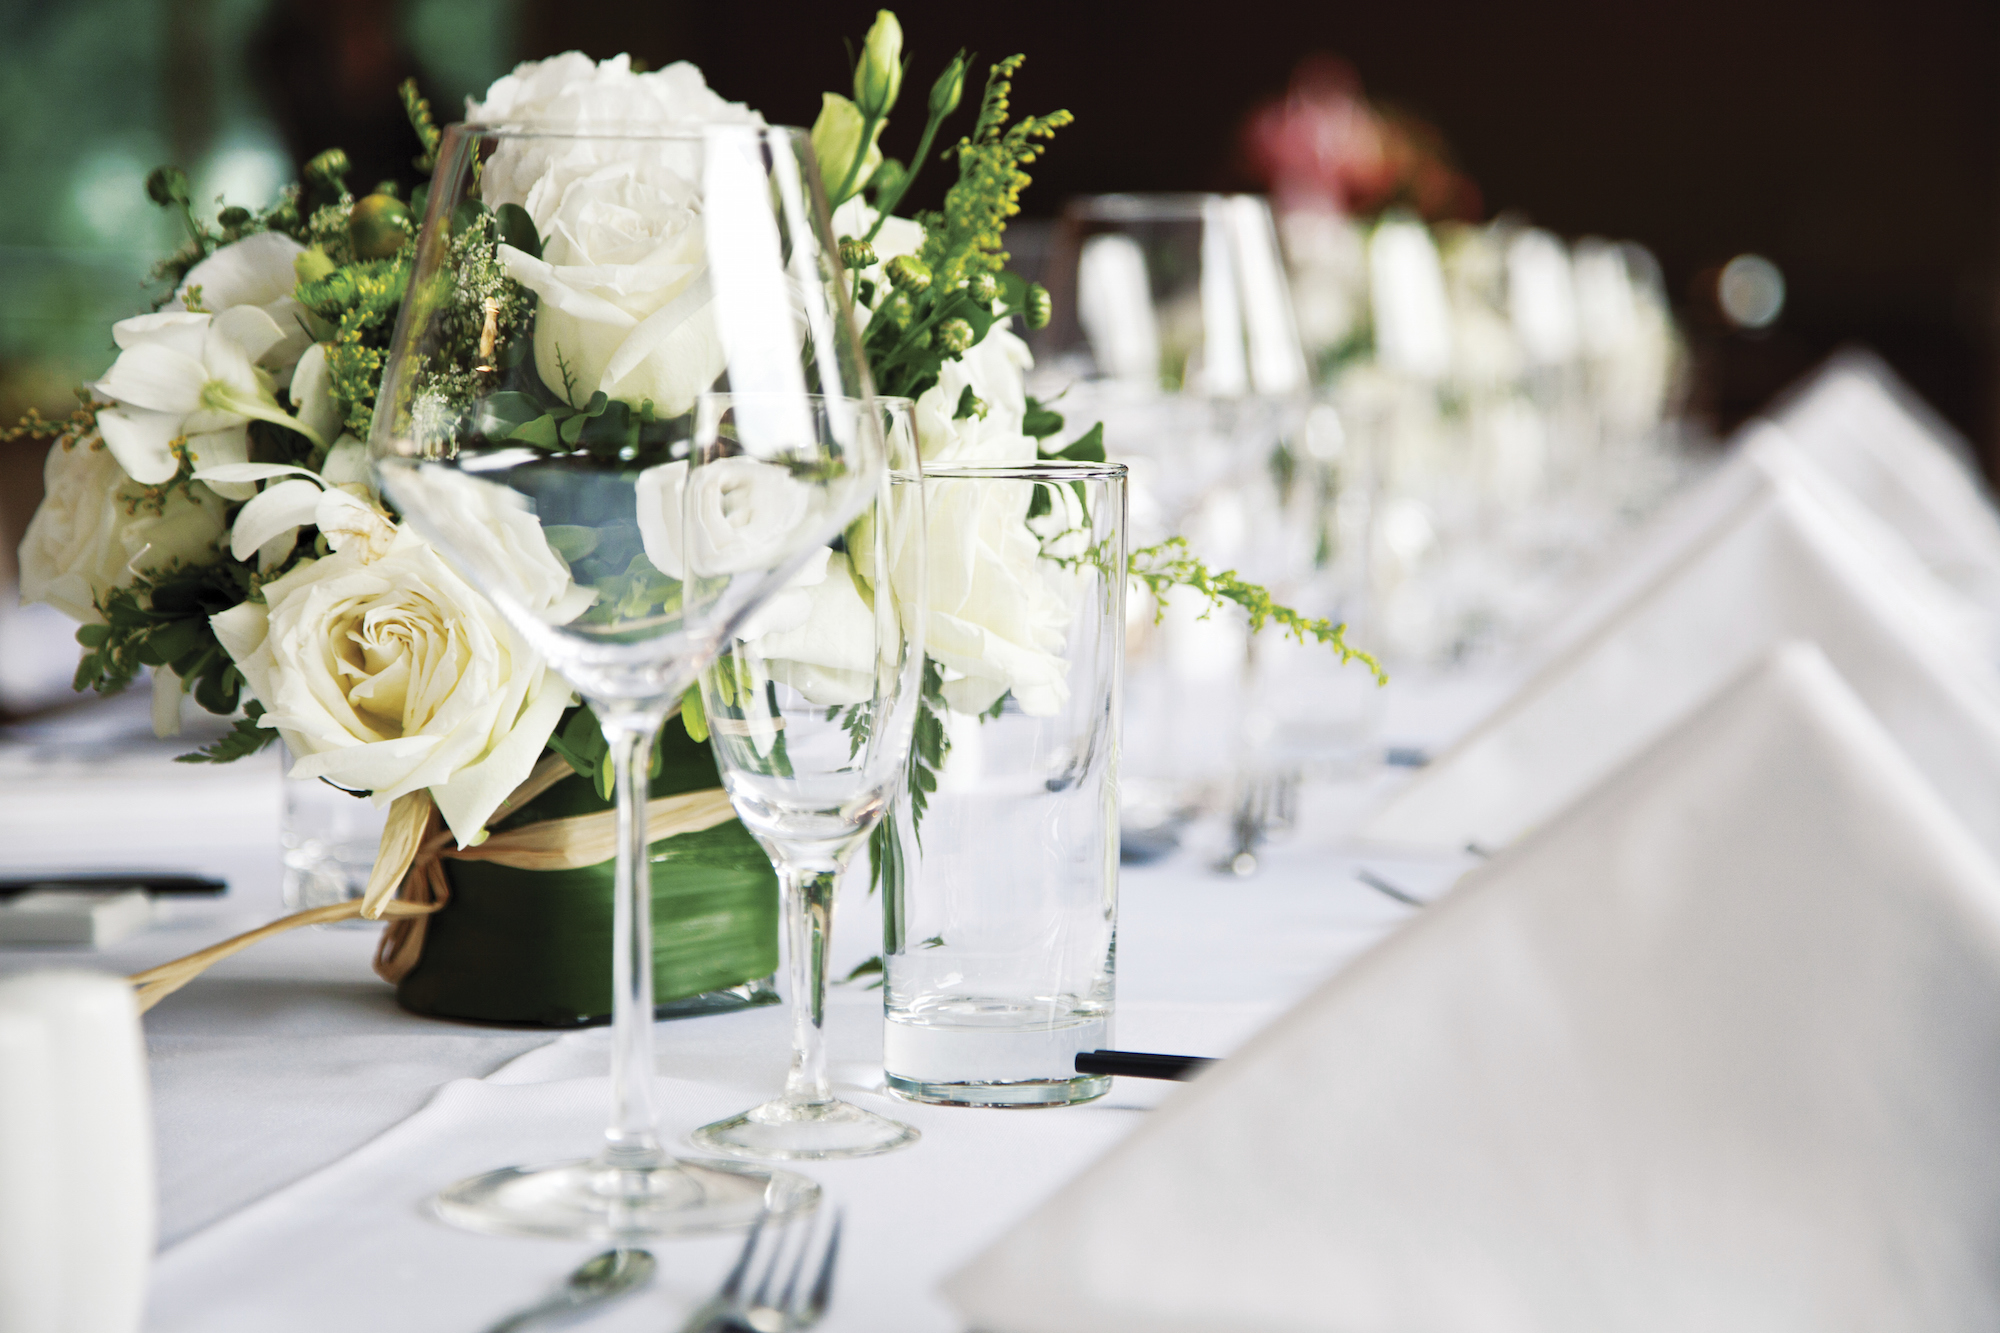 Wedding Etiquette - What to Buy and Wear to a Wedding